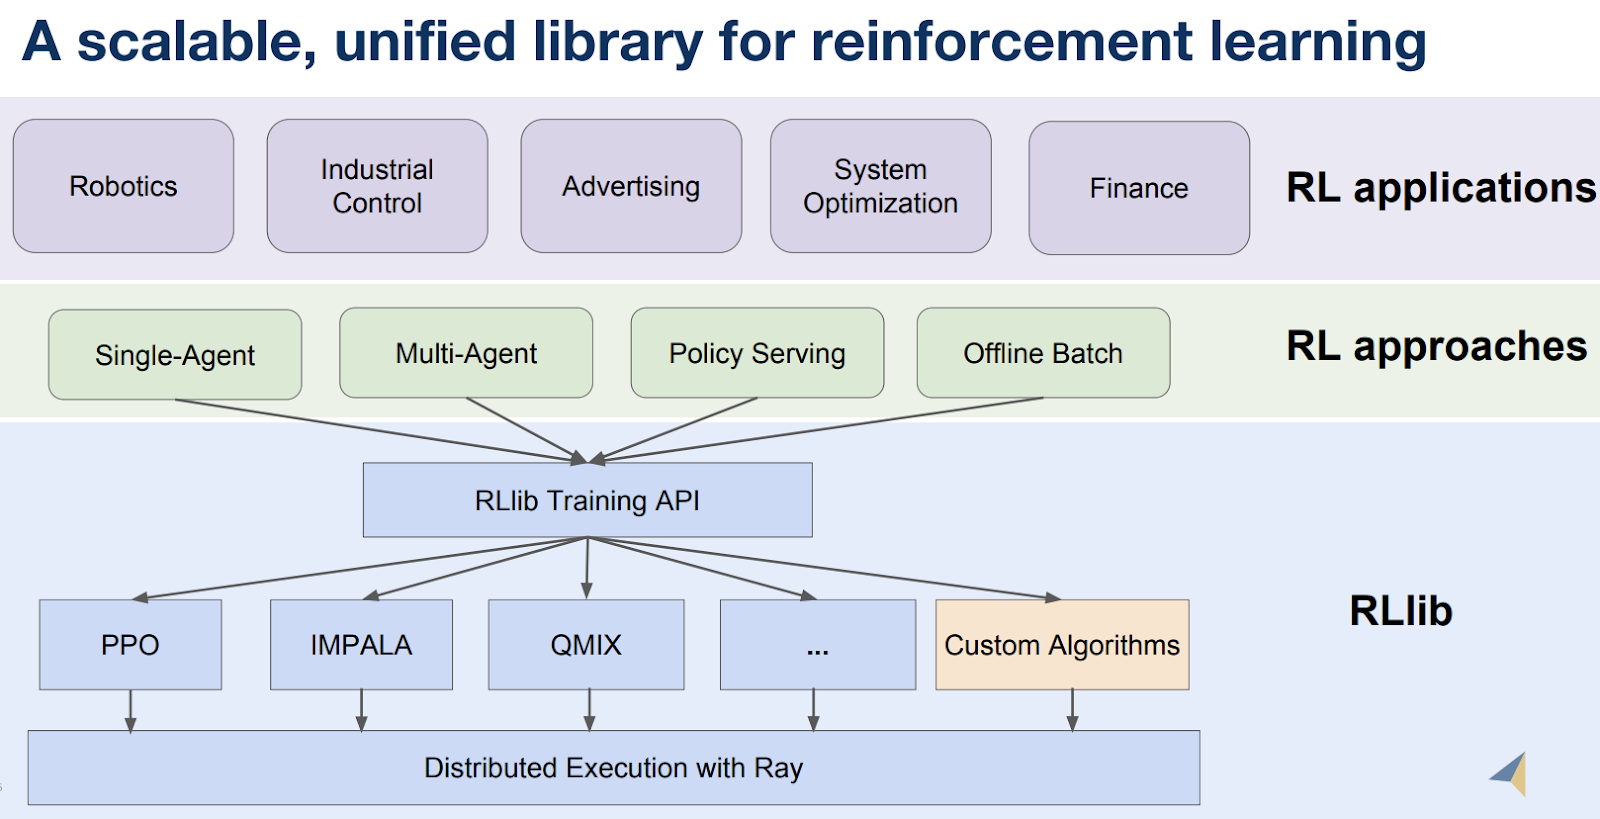 libraries that can be built on top of Ray